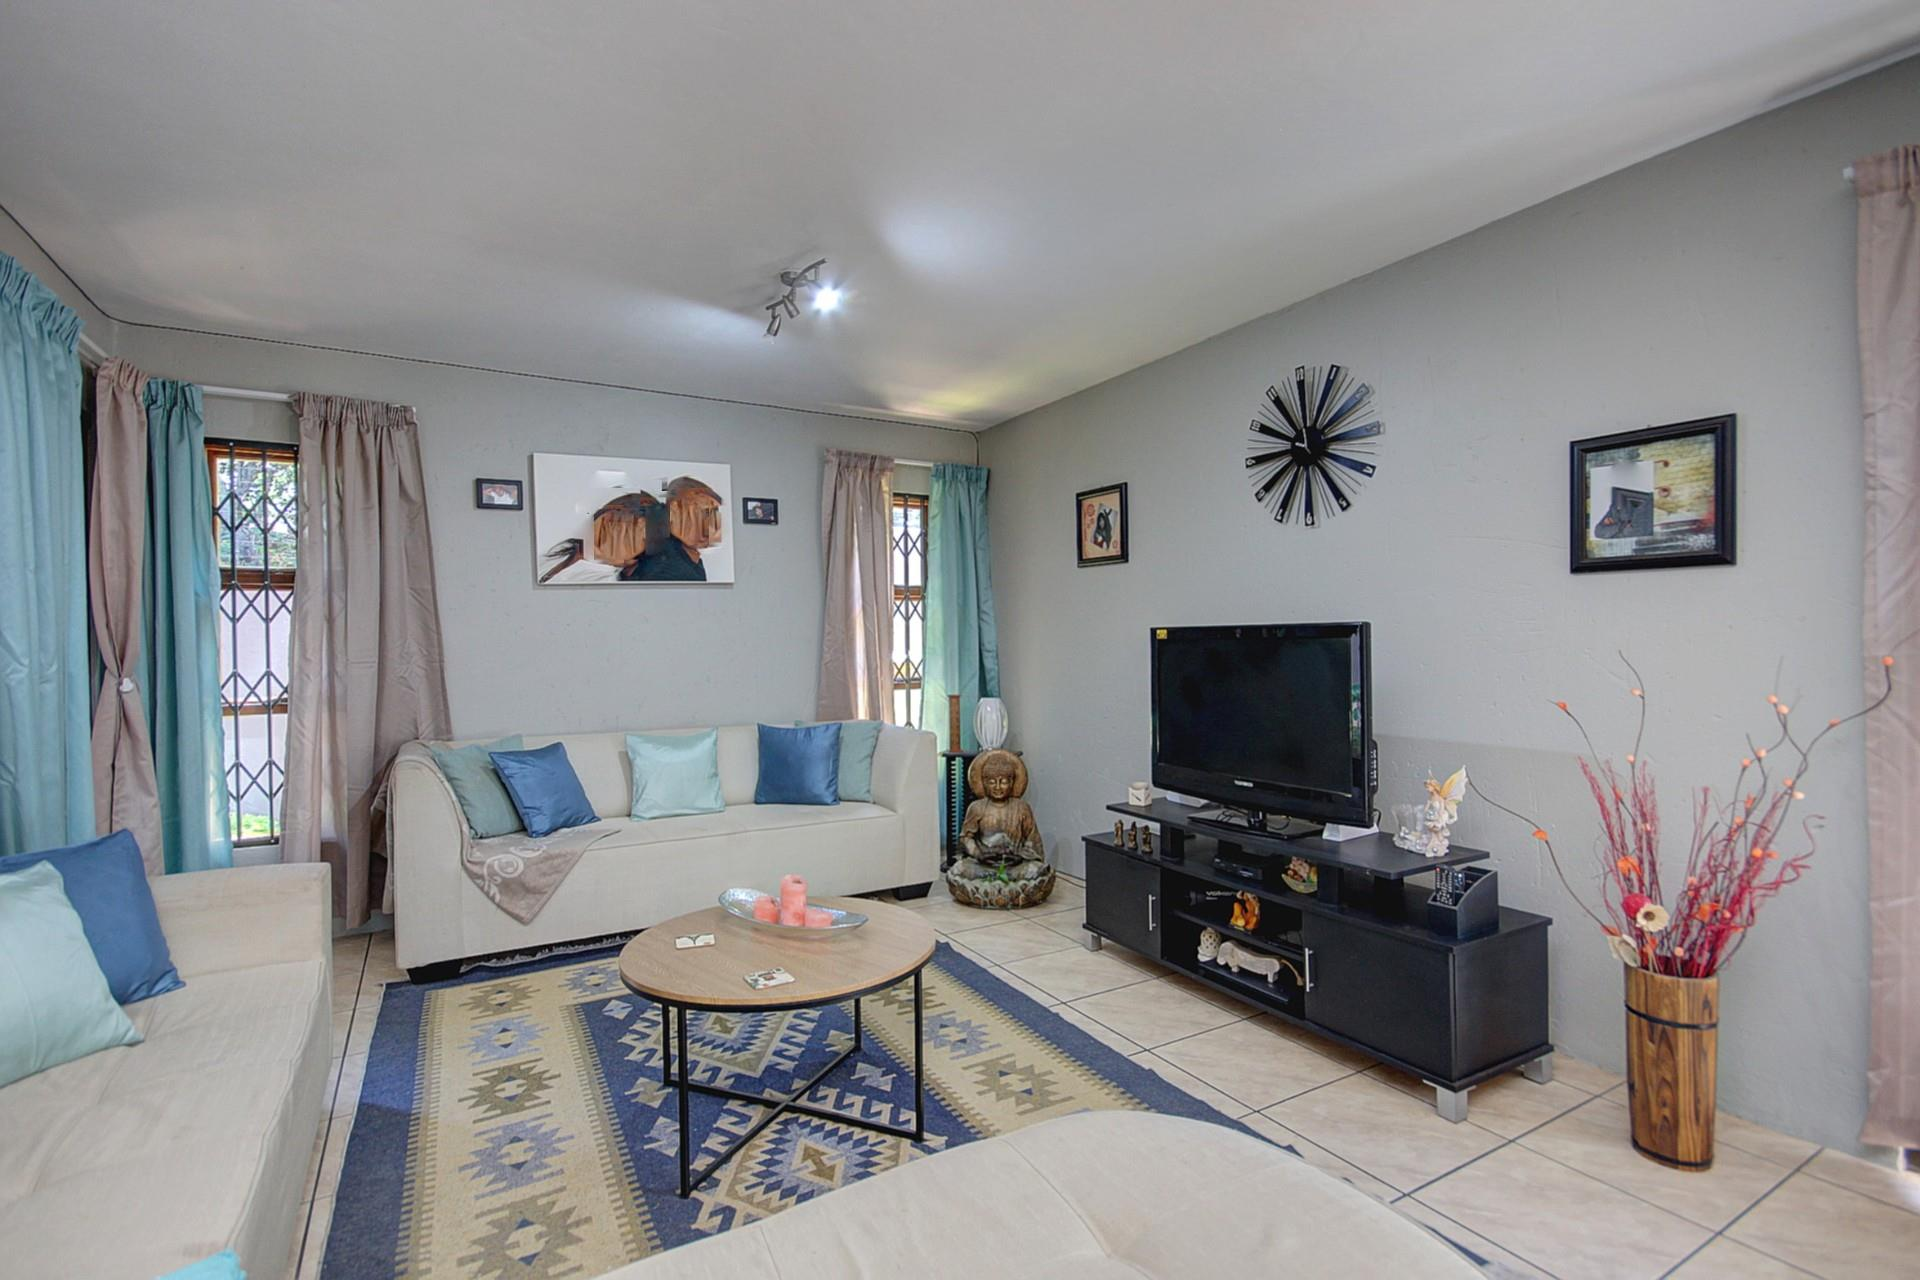 3 Bedroom House For Sale in Ferndale